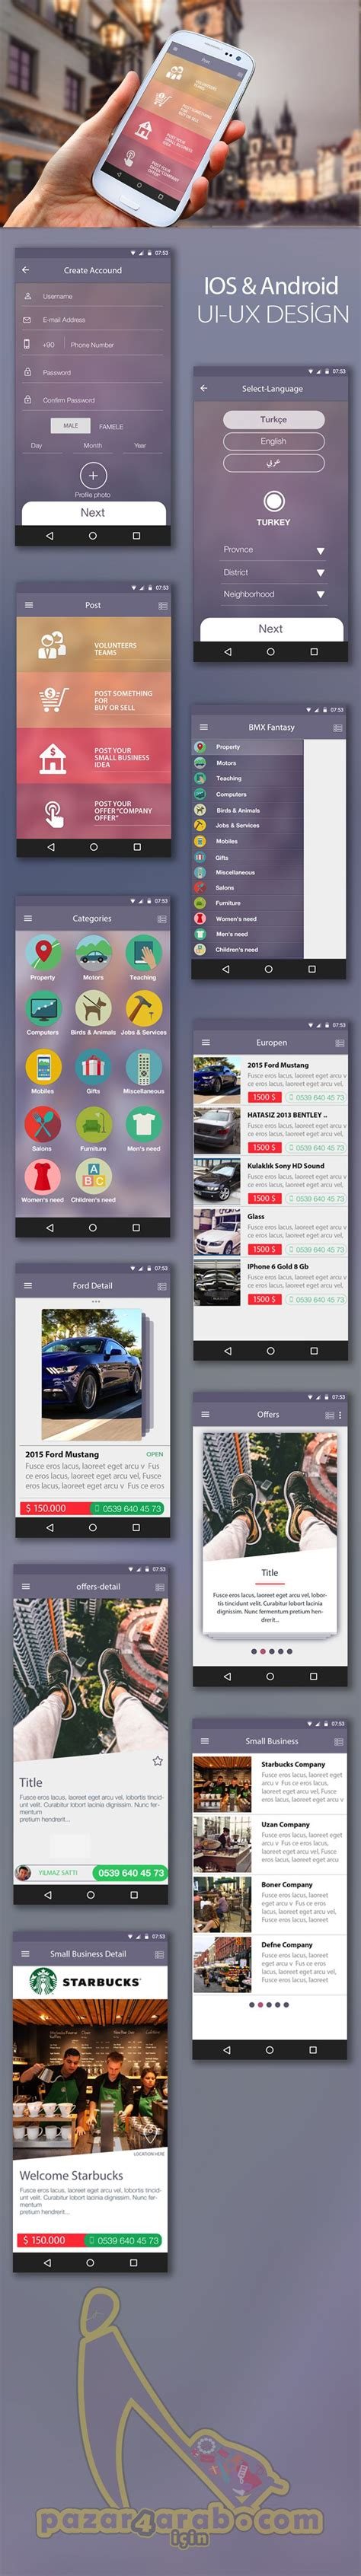 pinterest layout android best 25 mobile ui design ideas on pinterest app design